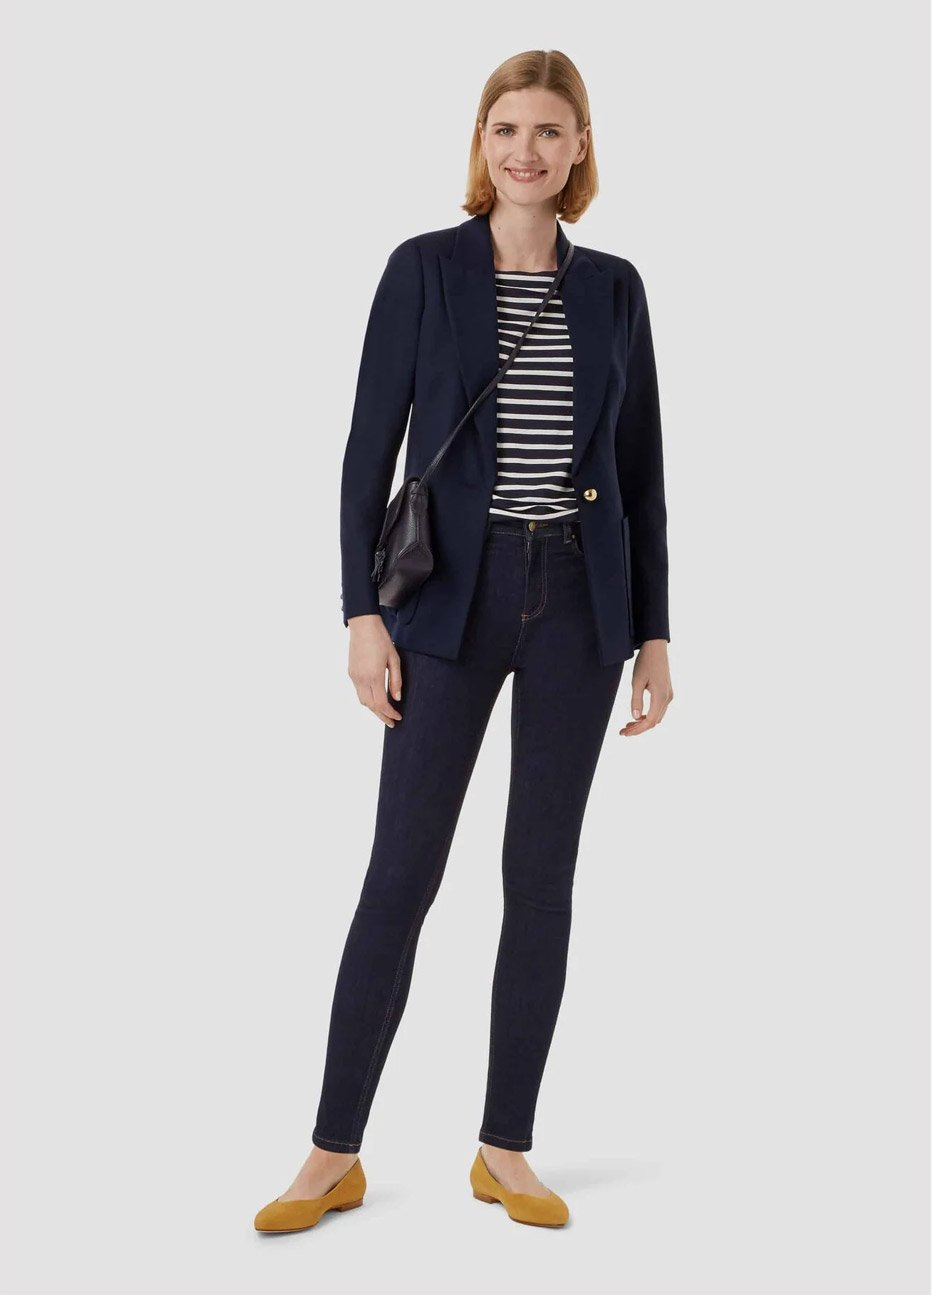 Women's top with horizontal stripes in black and white, paired with a navy blazer, blue jeans and a crossbody bag in black, by Hobbs.